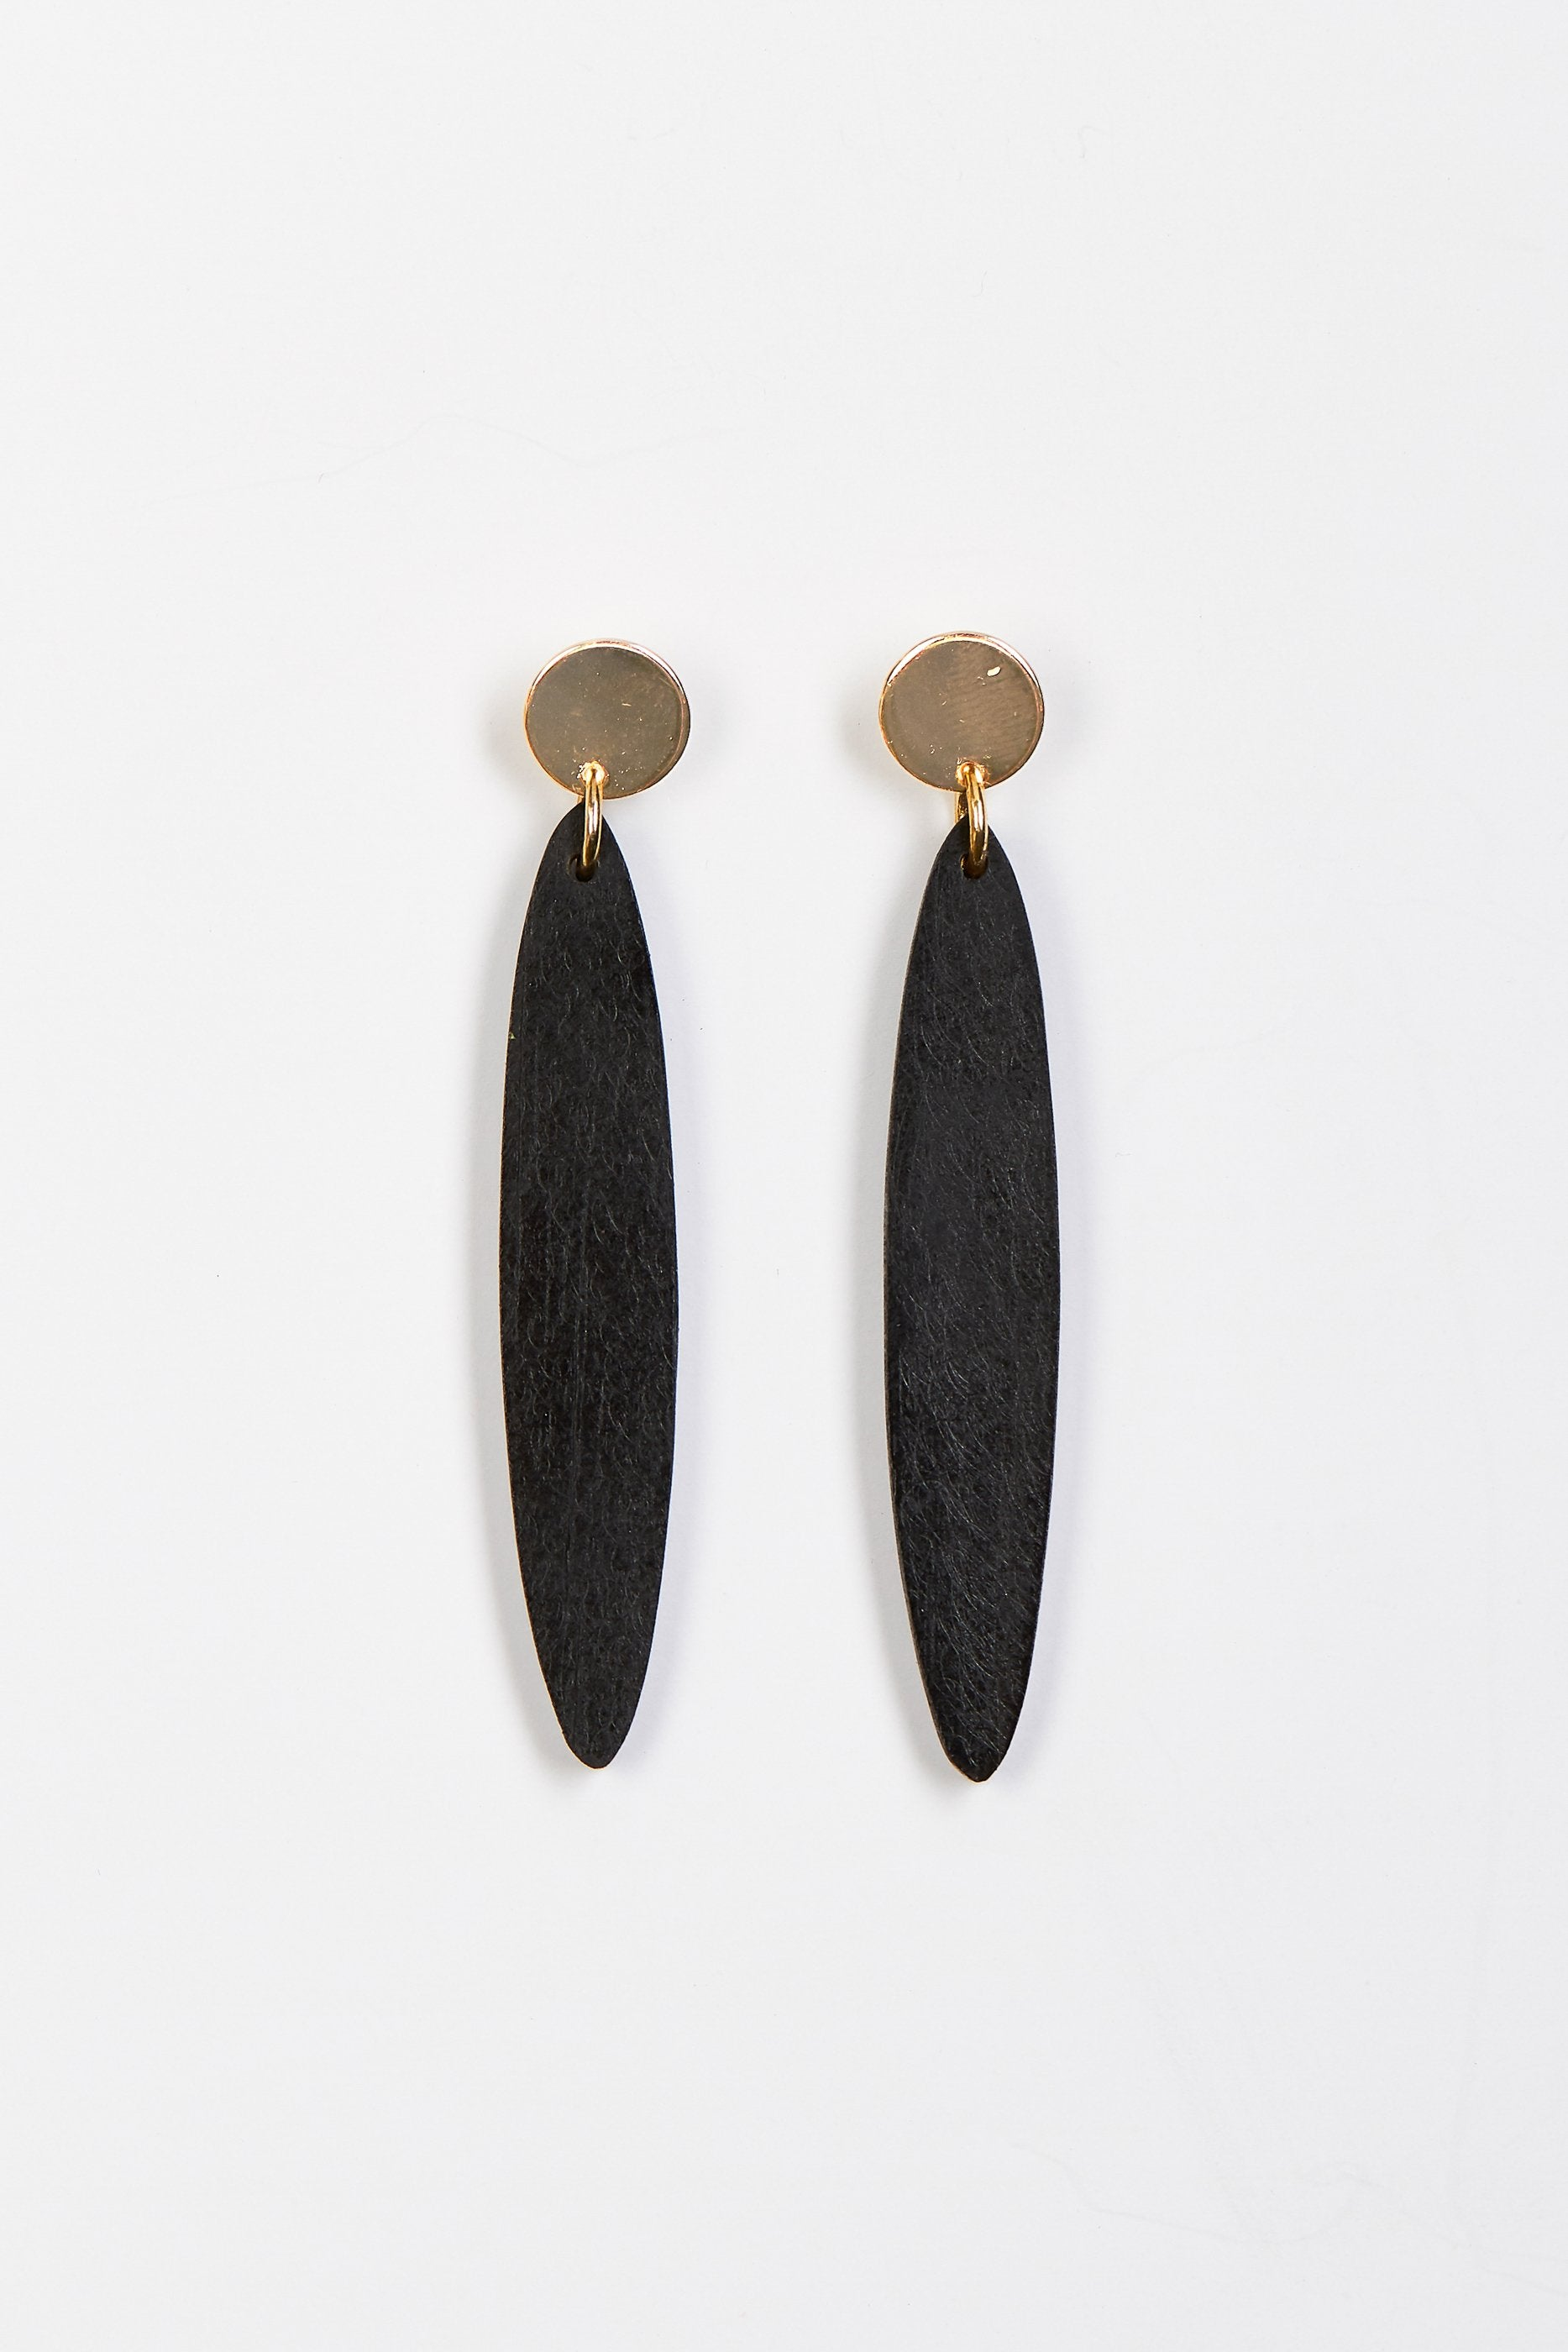 The Navona Earrings